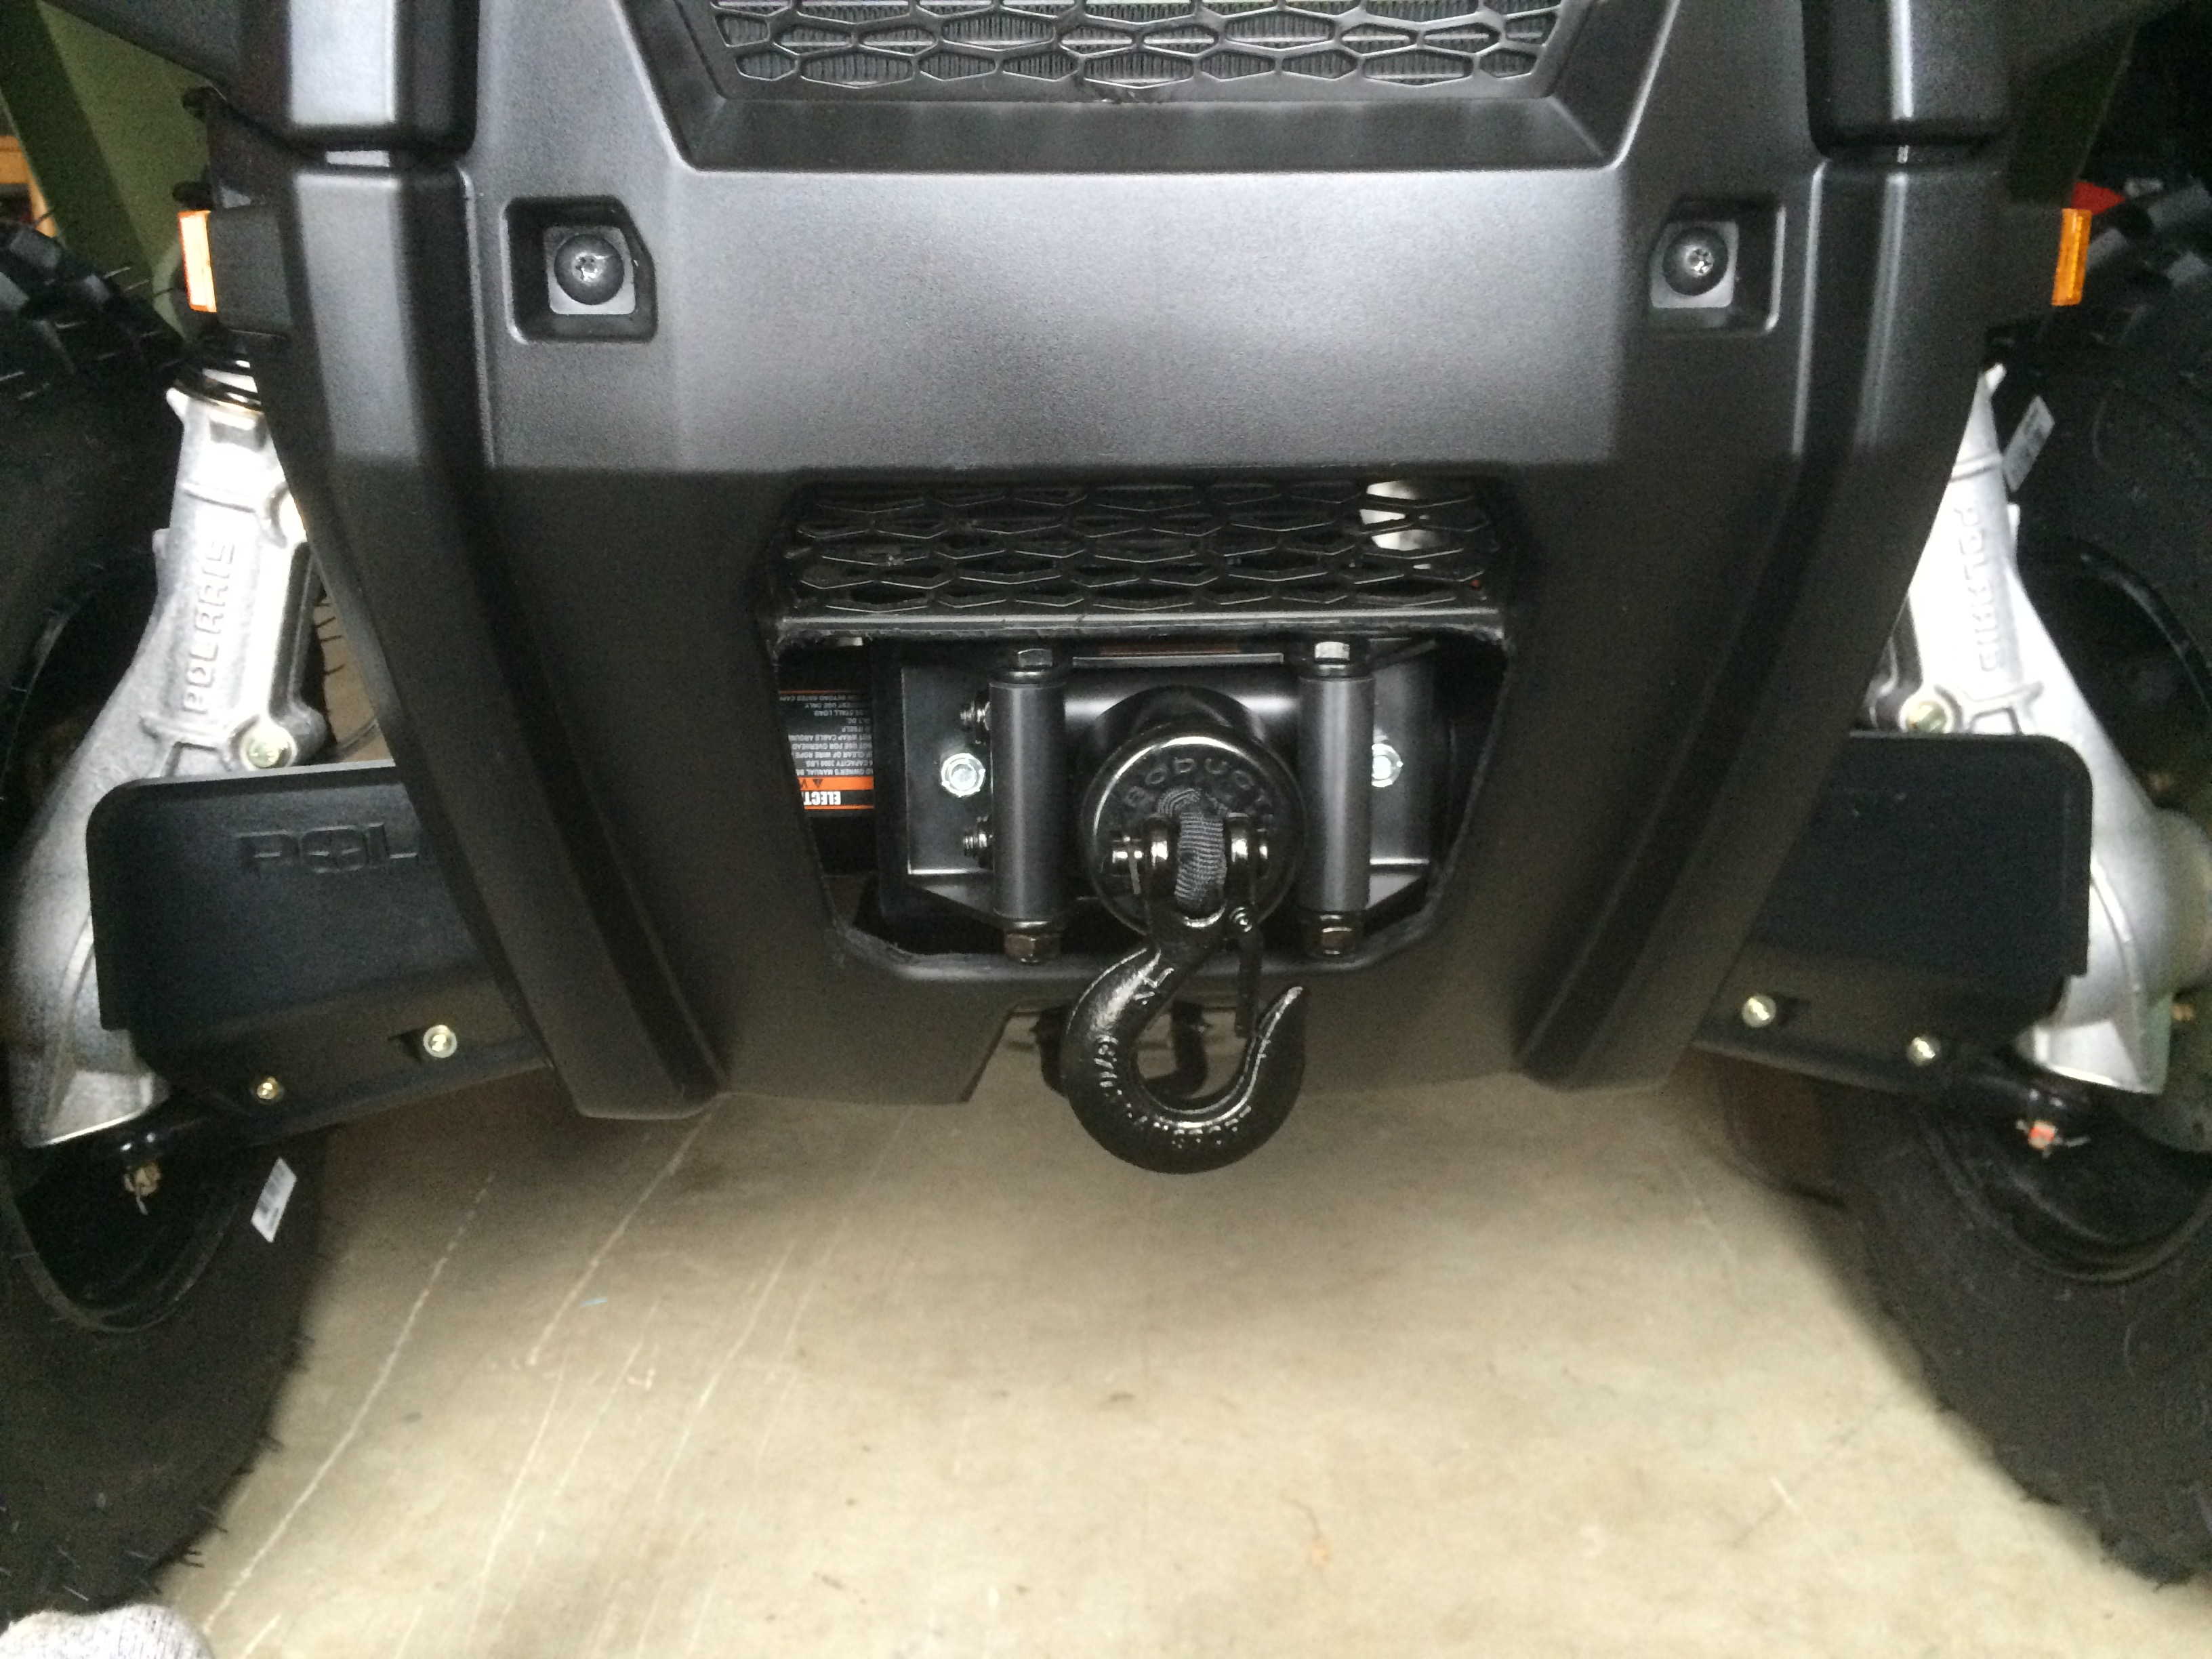 Polaris Ranger Kfi Winch Wiring Diagram Will Be A Wire 2004 Sportsman 500 3500 Stealth Installed Atv Forum Rh Polarisatvforums Com 90